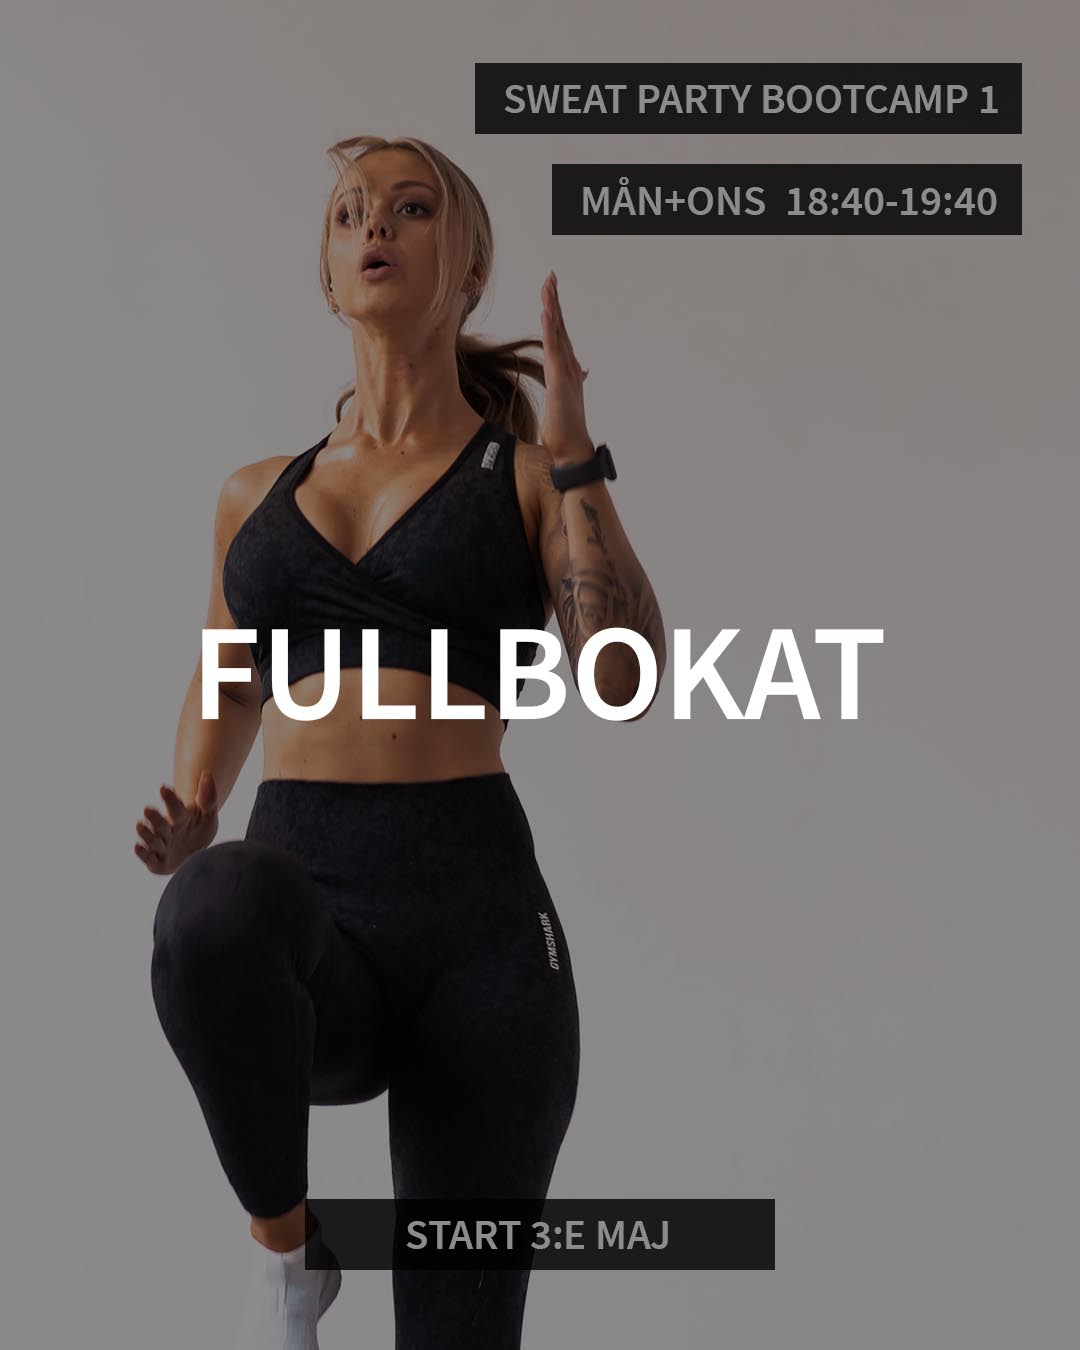 SWEAT PARTY BOOTCAMP 1